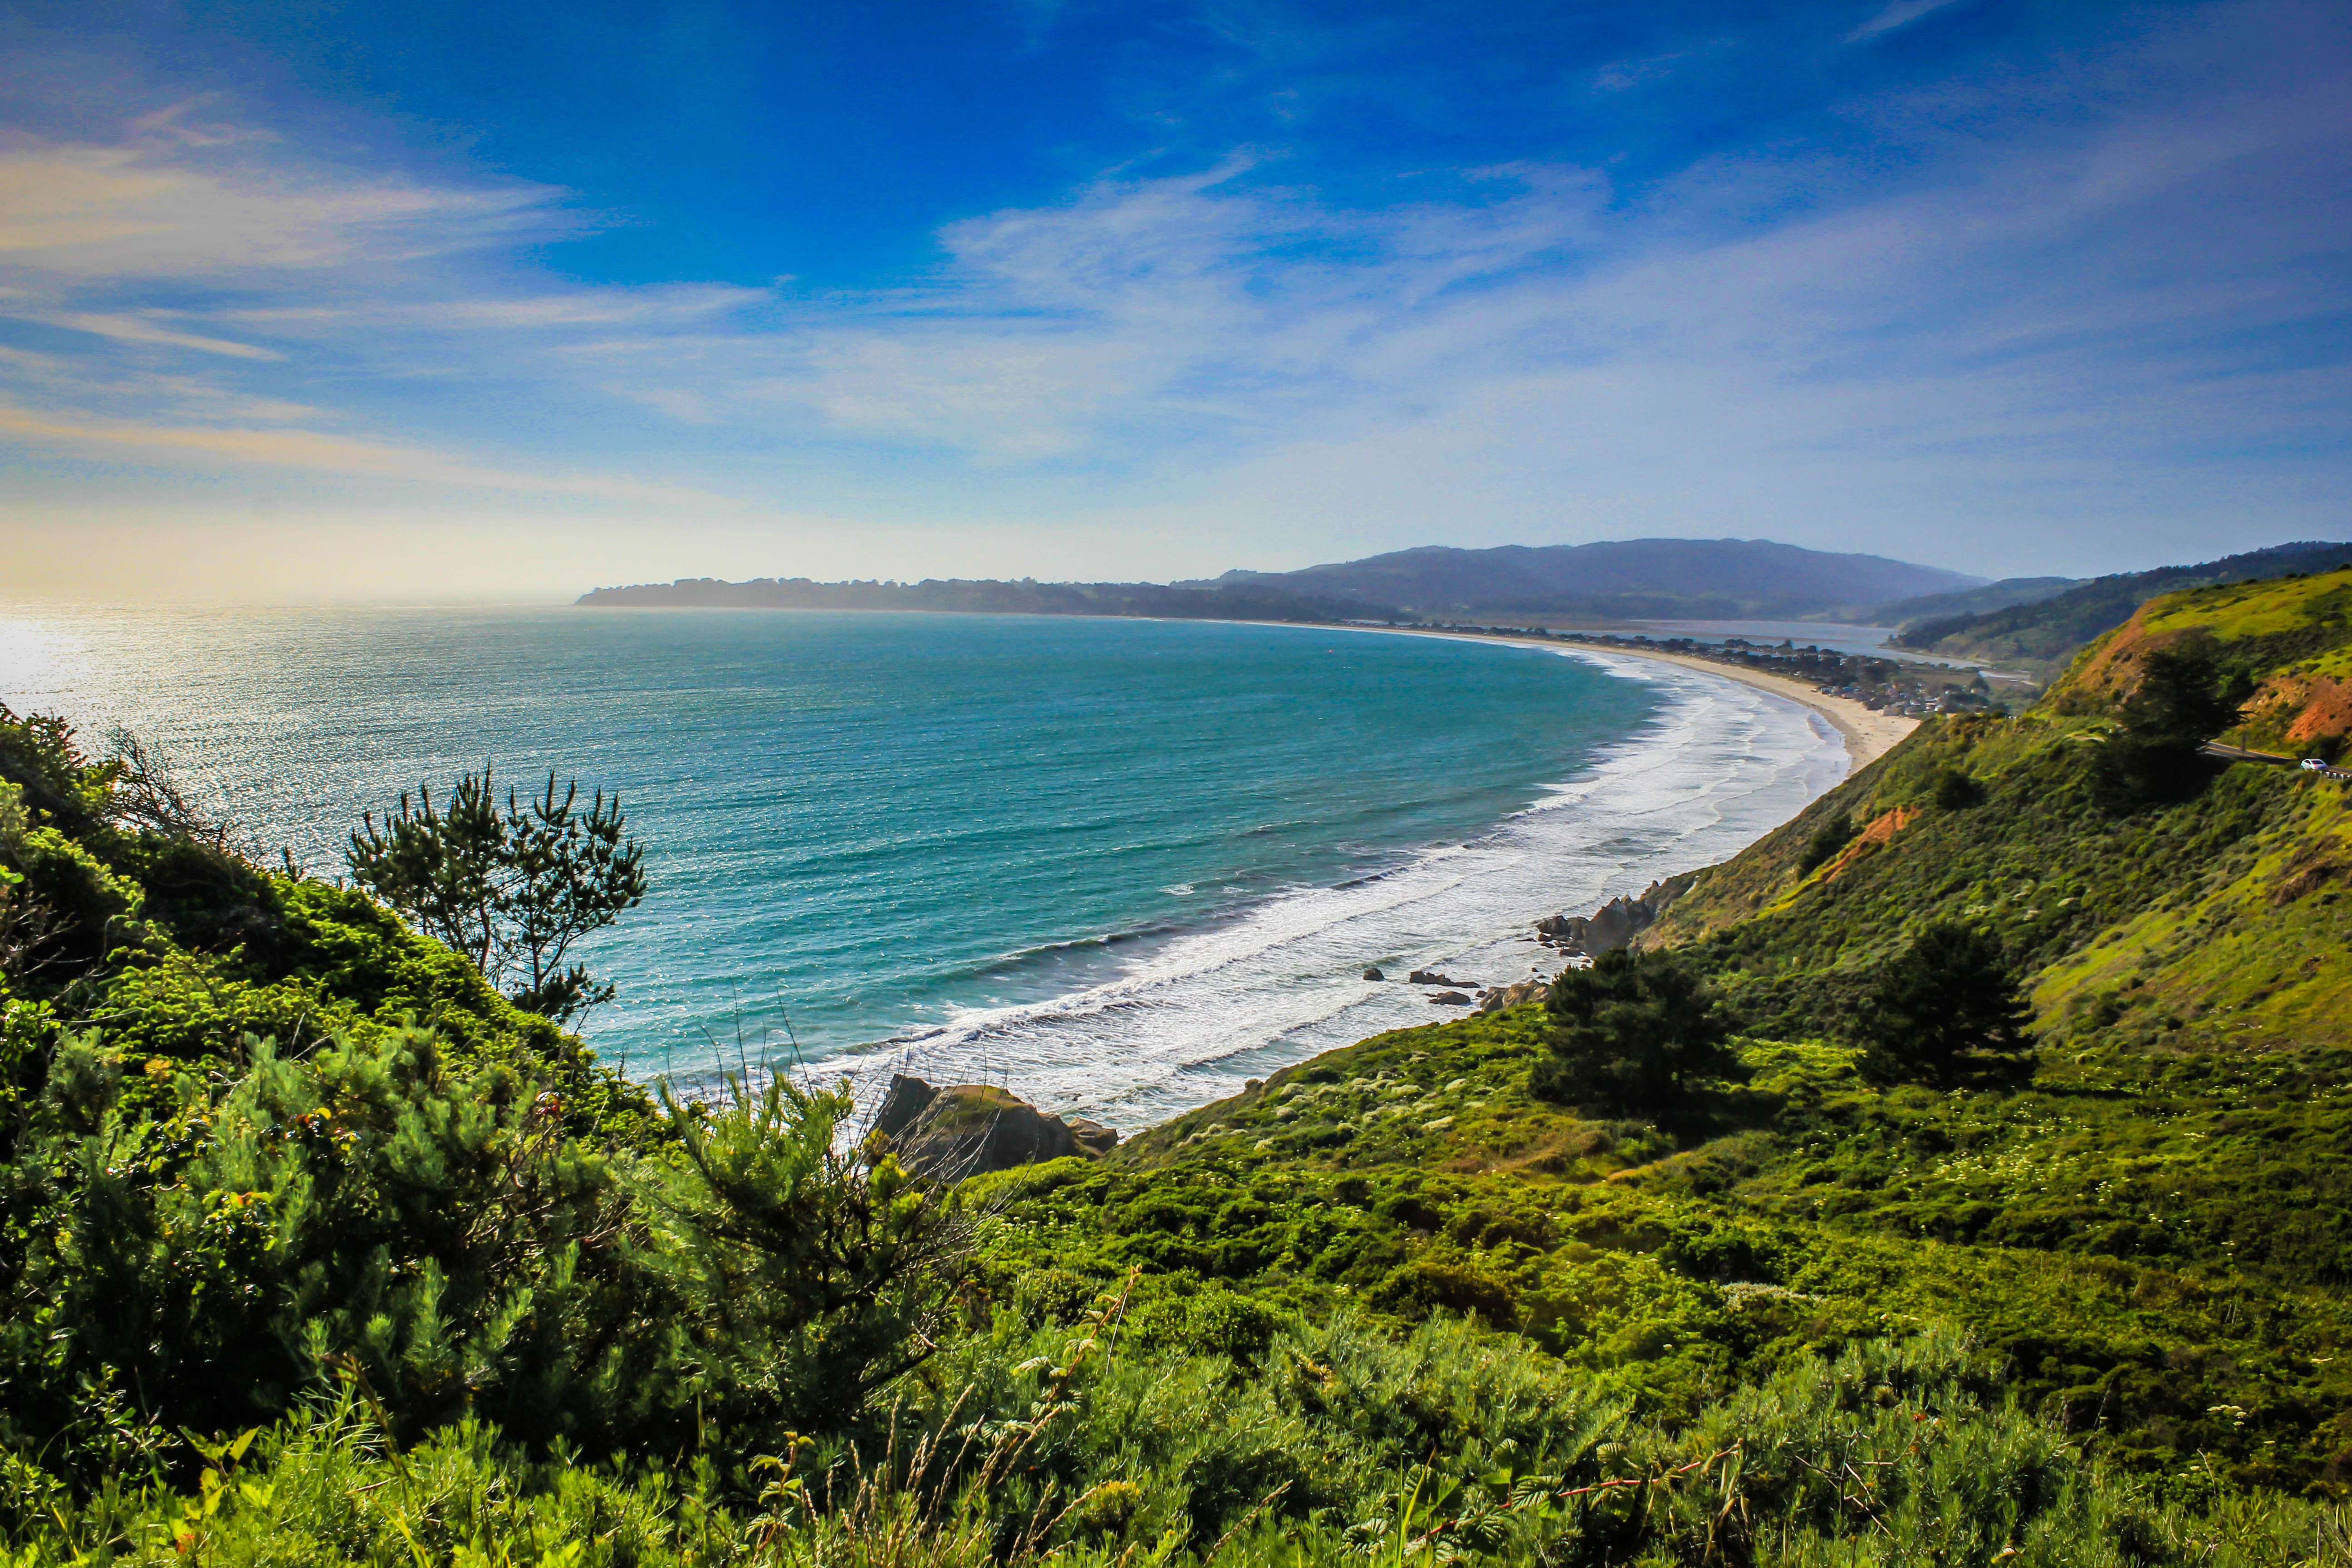 HD Wallpaper The ocean view from Marin County, California